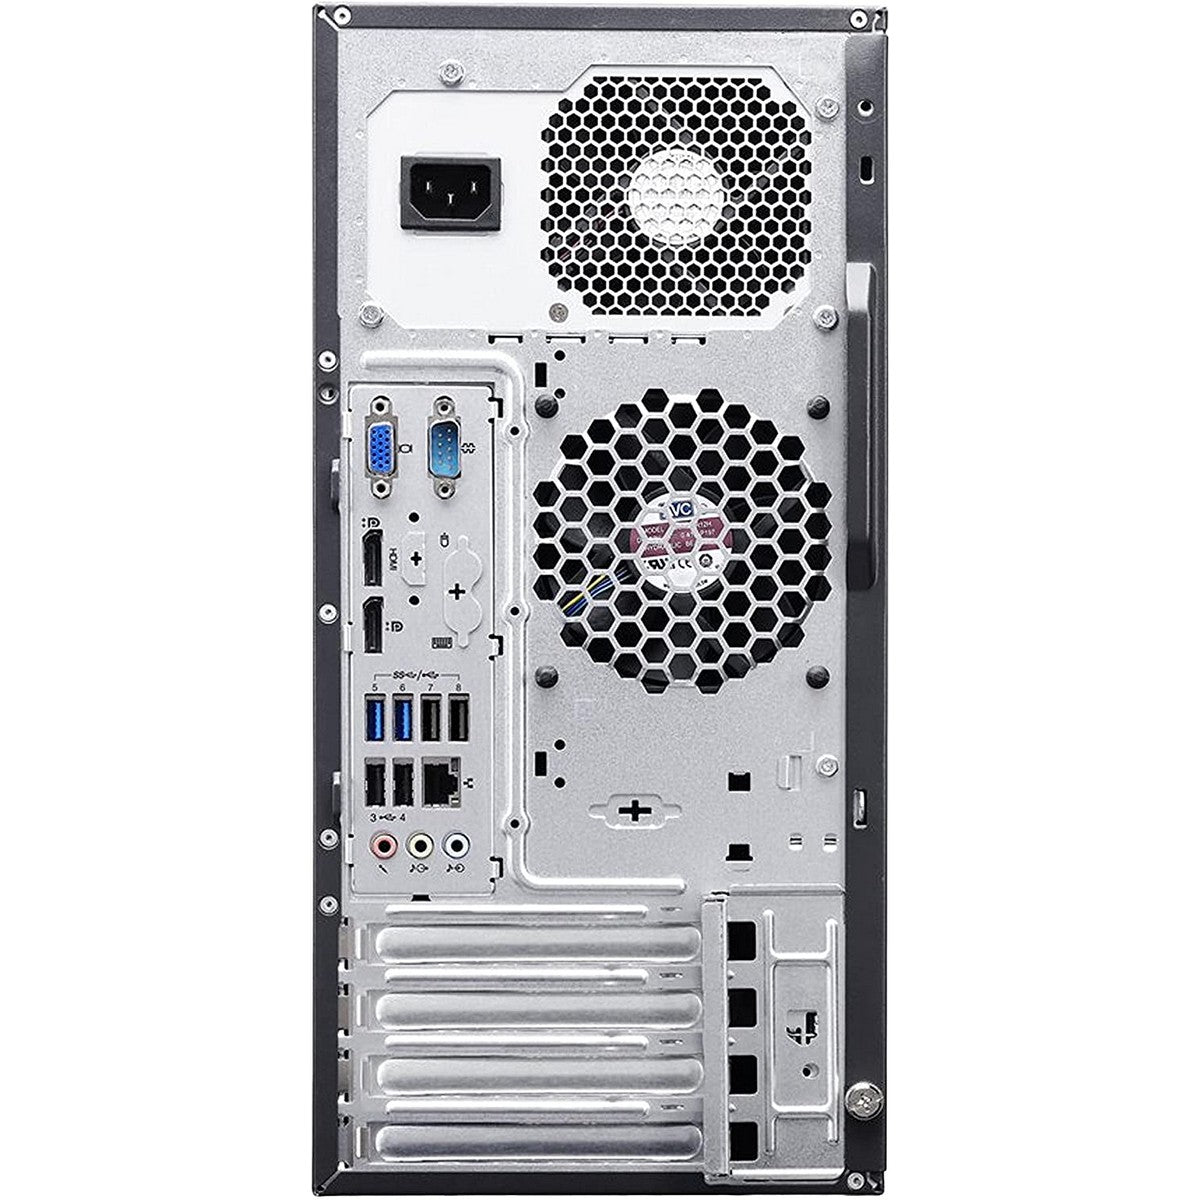 Used Lenovo ThinkCentre M83 Tower Desktop, Intel Core i5 i5-4570, 4GB RAM, 500GB HDD